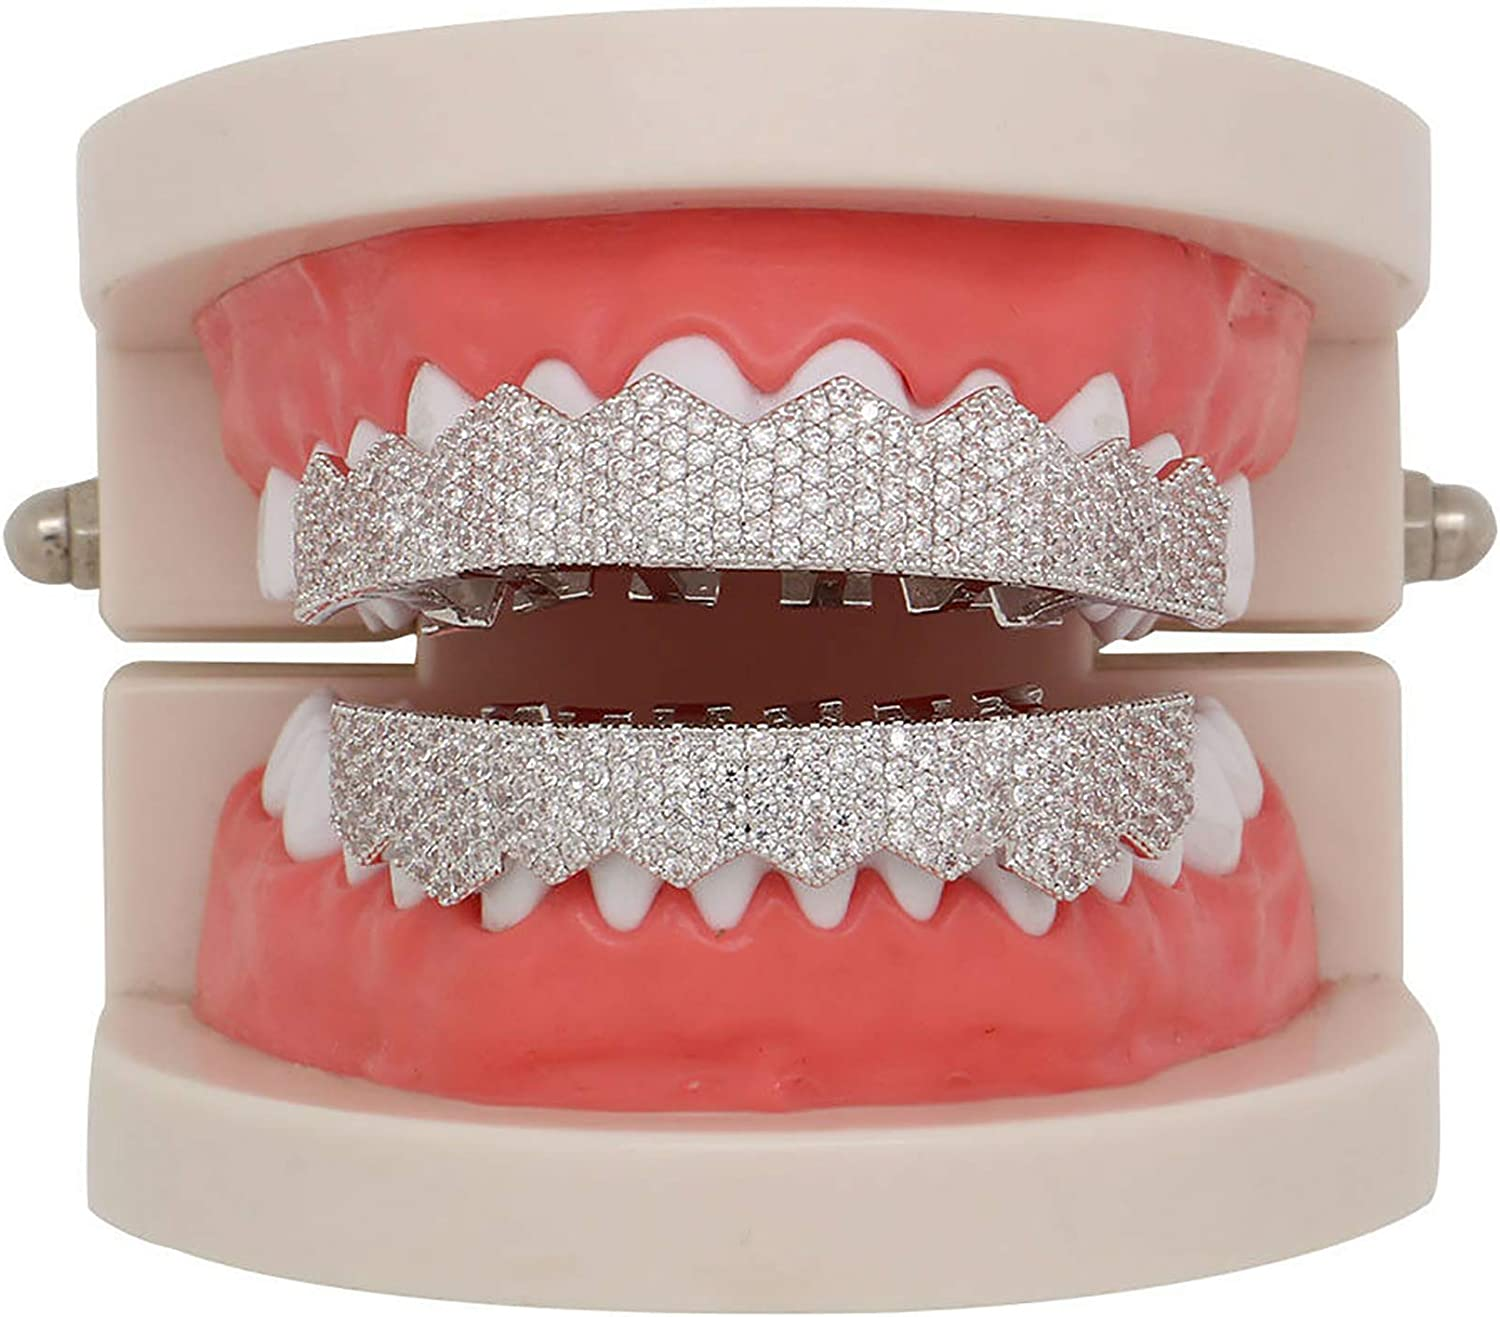 14K White Gold Plated Grillz for Mouth Top Bottom Hip Hop 8 Teeth Grills for Teeth Mouth Set - Grillz, Teeth Cap, Iced Out Grillz